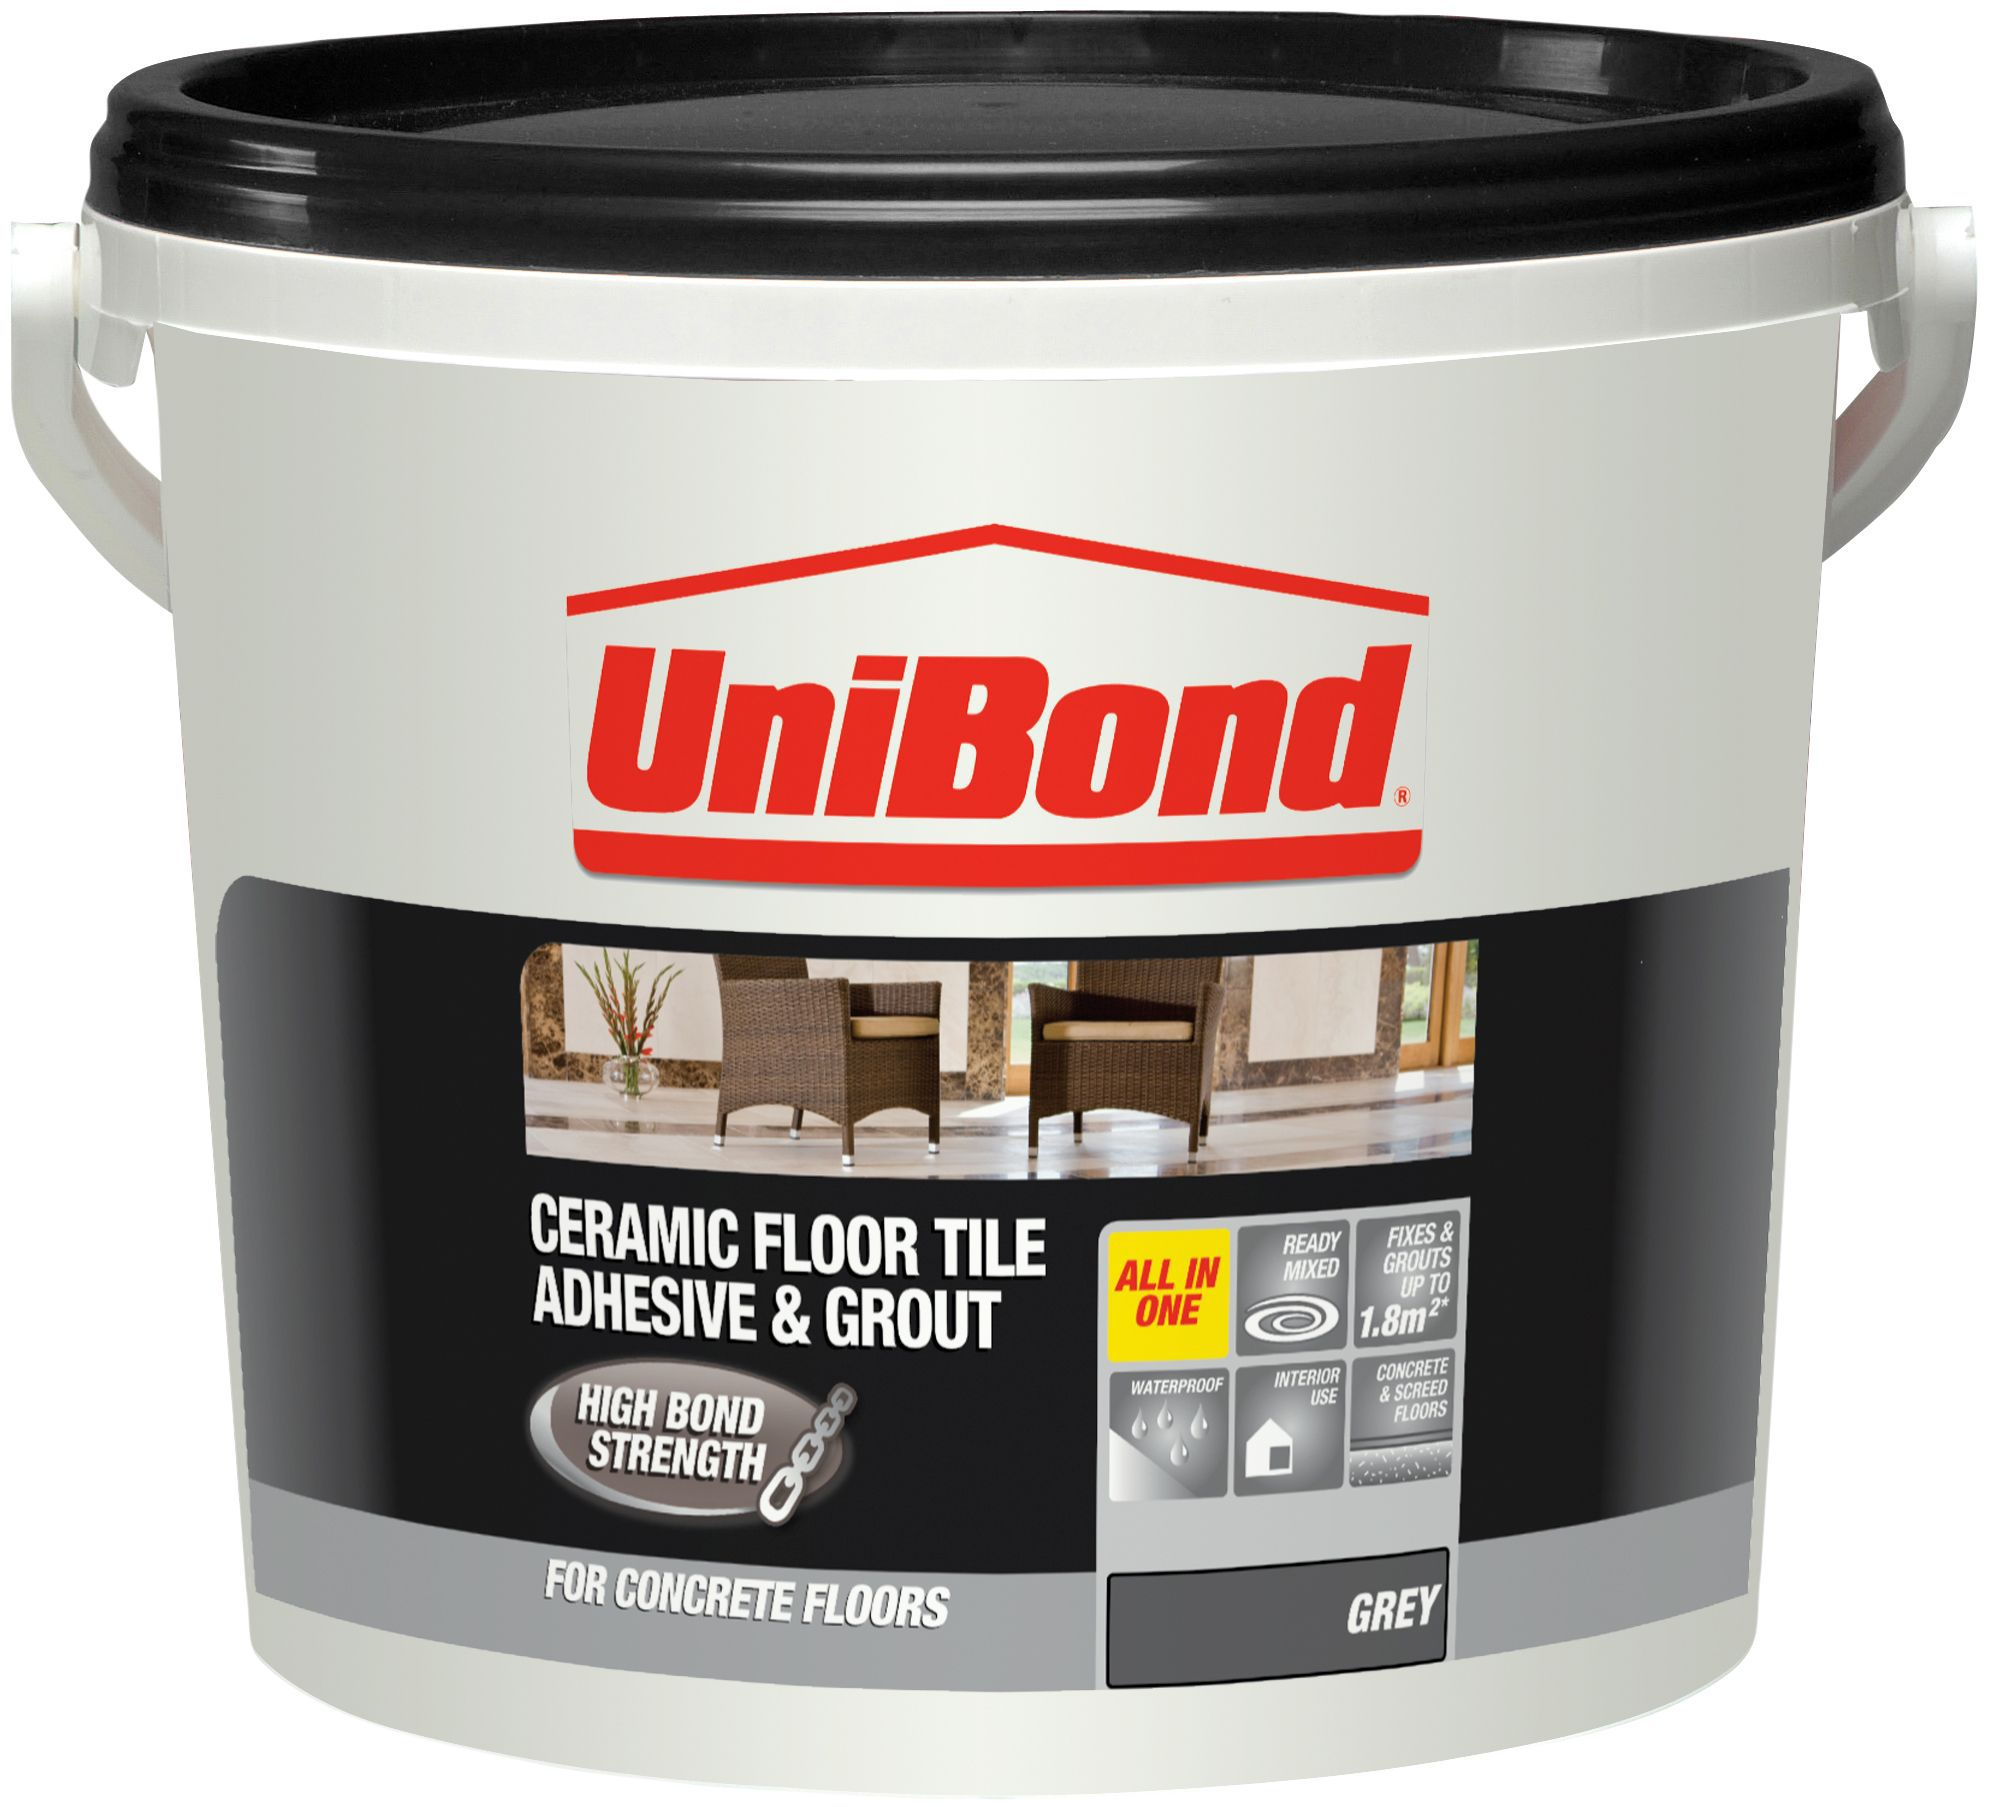 Ceramic Floor Tile Adhesive And Grout